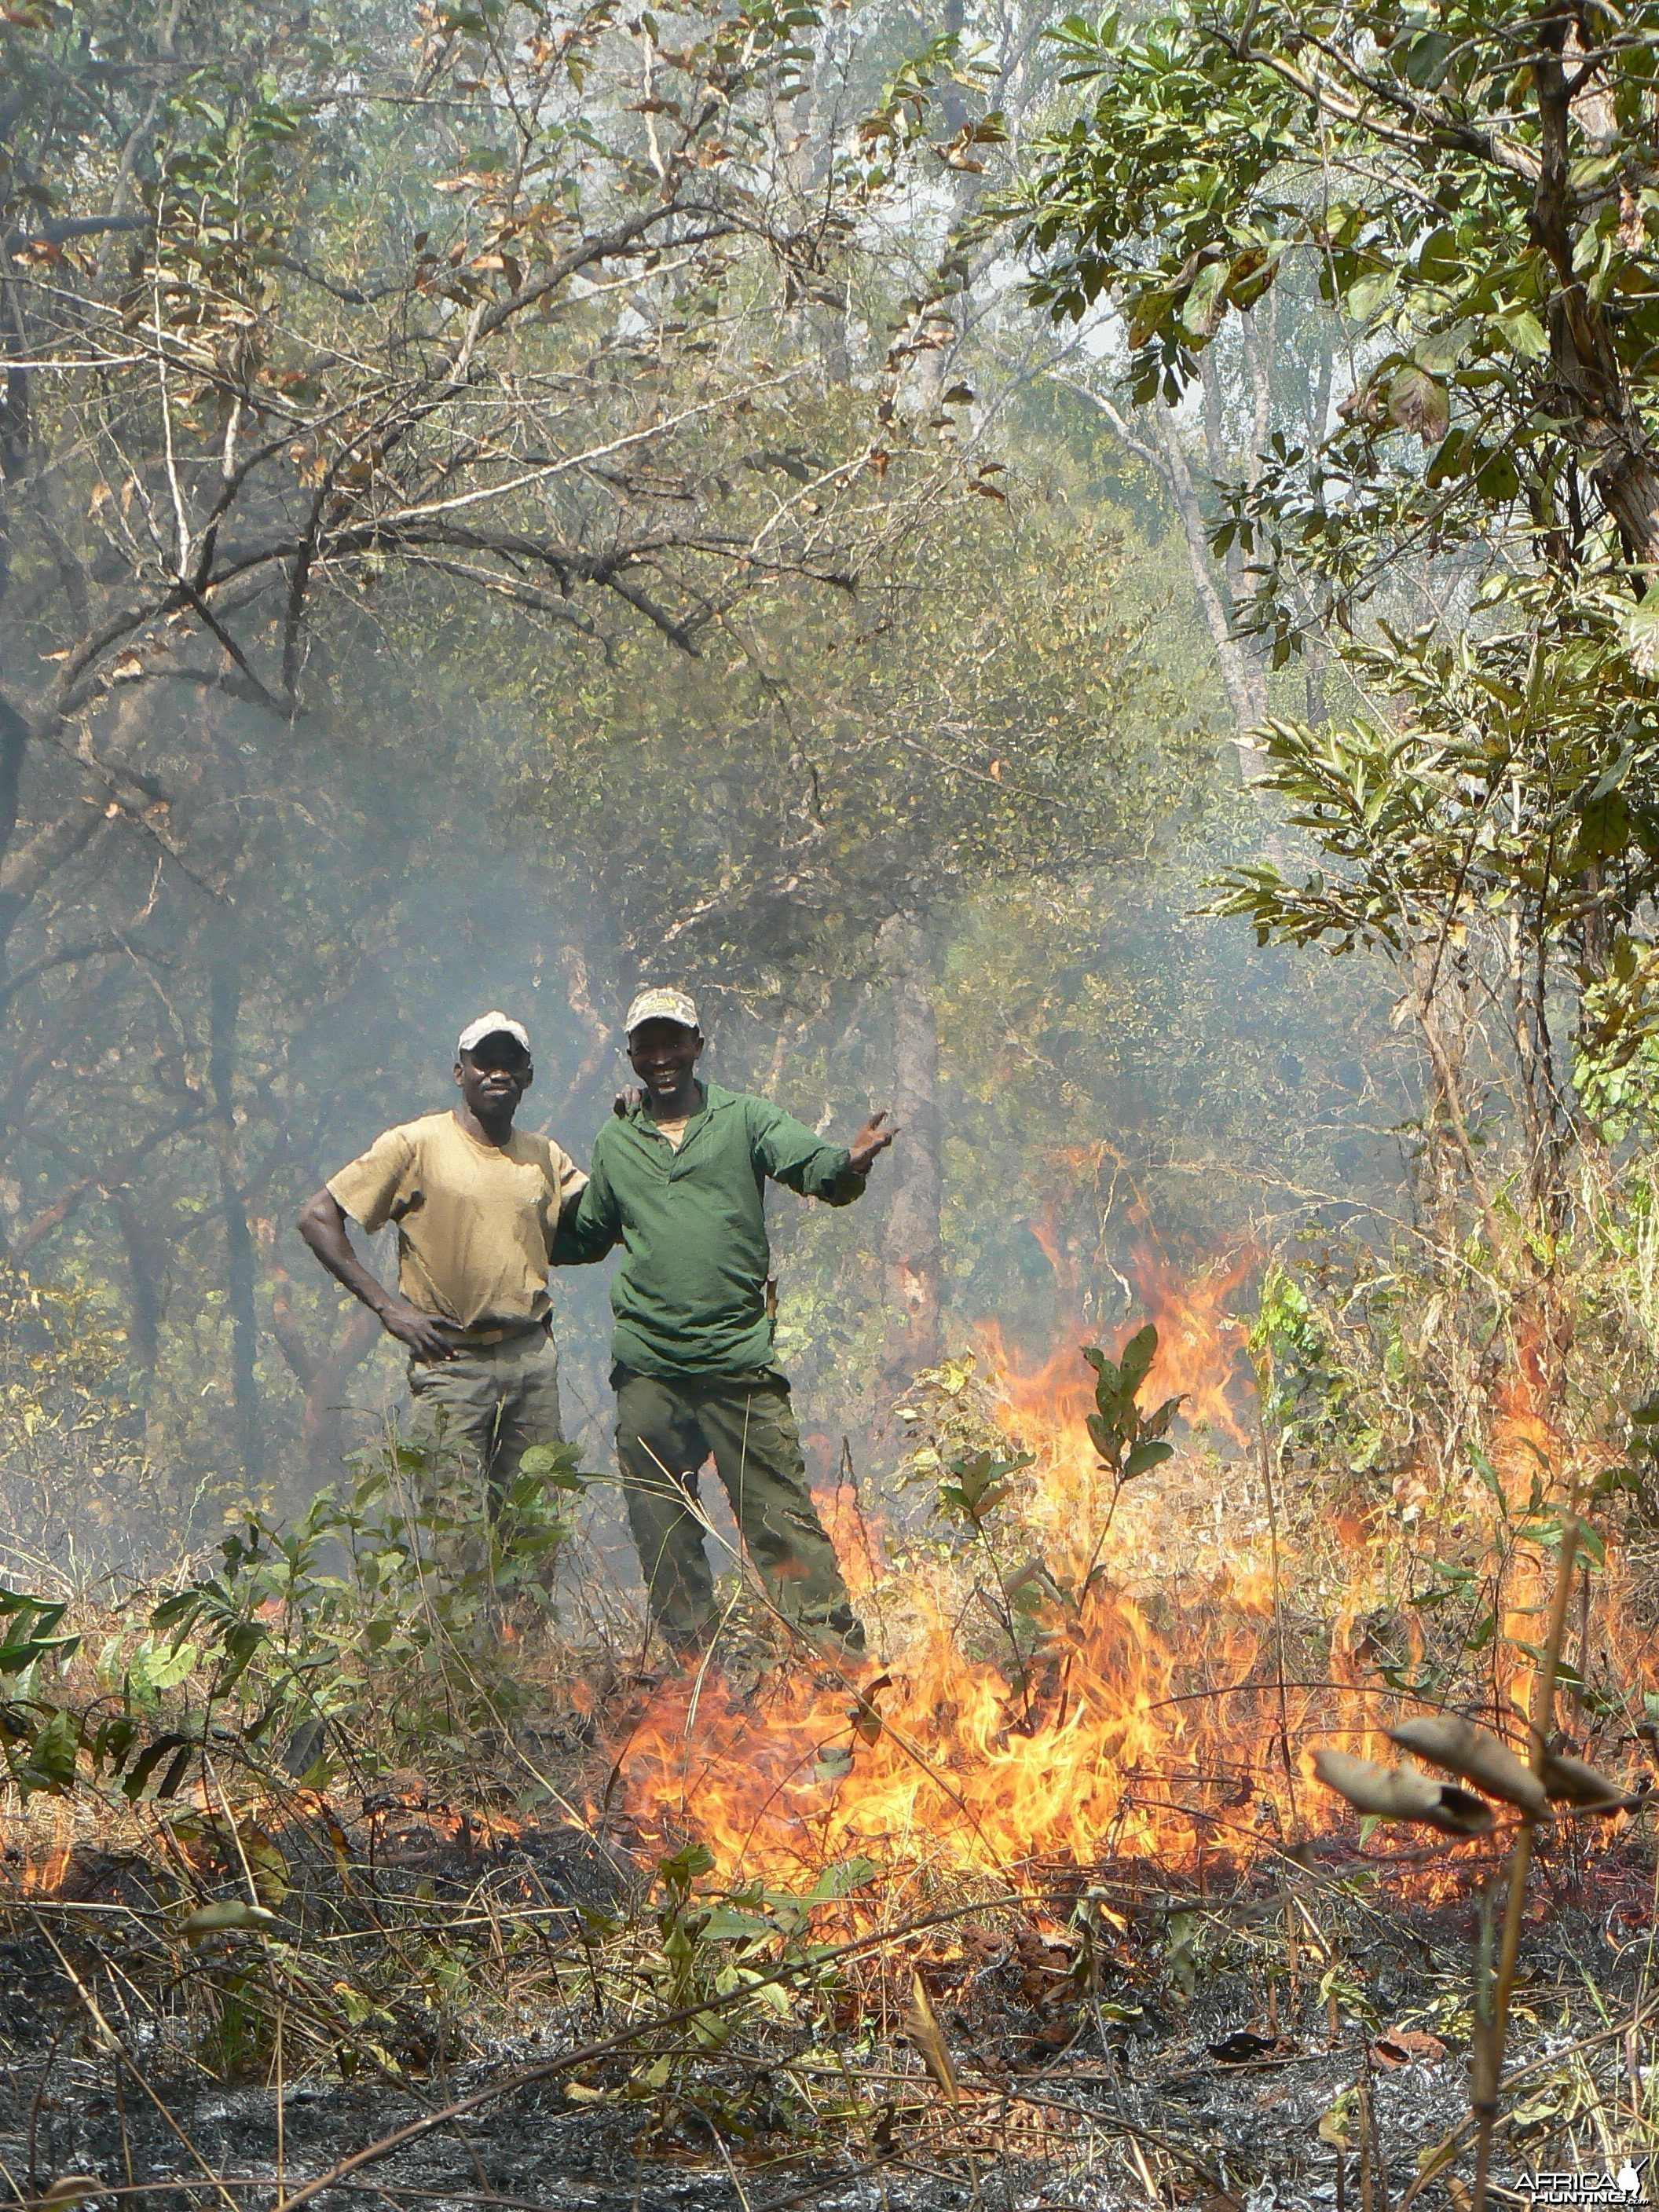 Bush fire Central African Republic